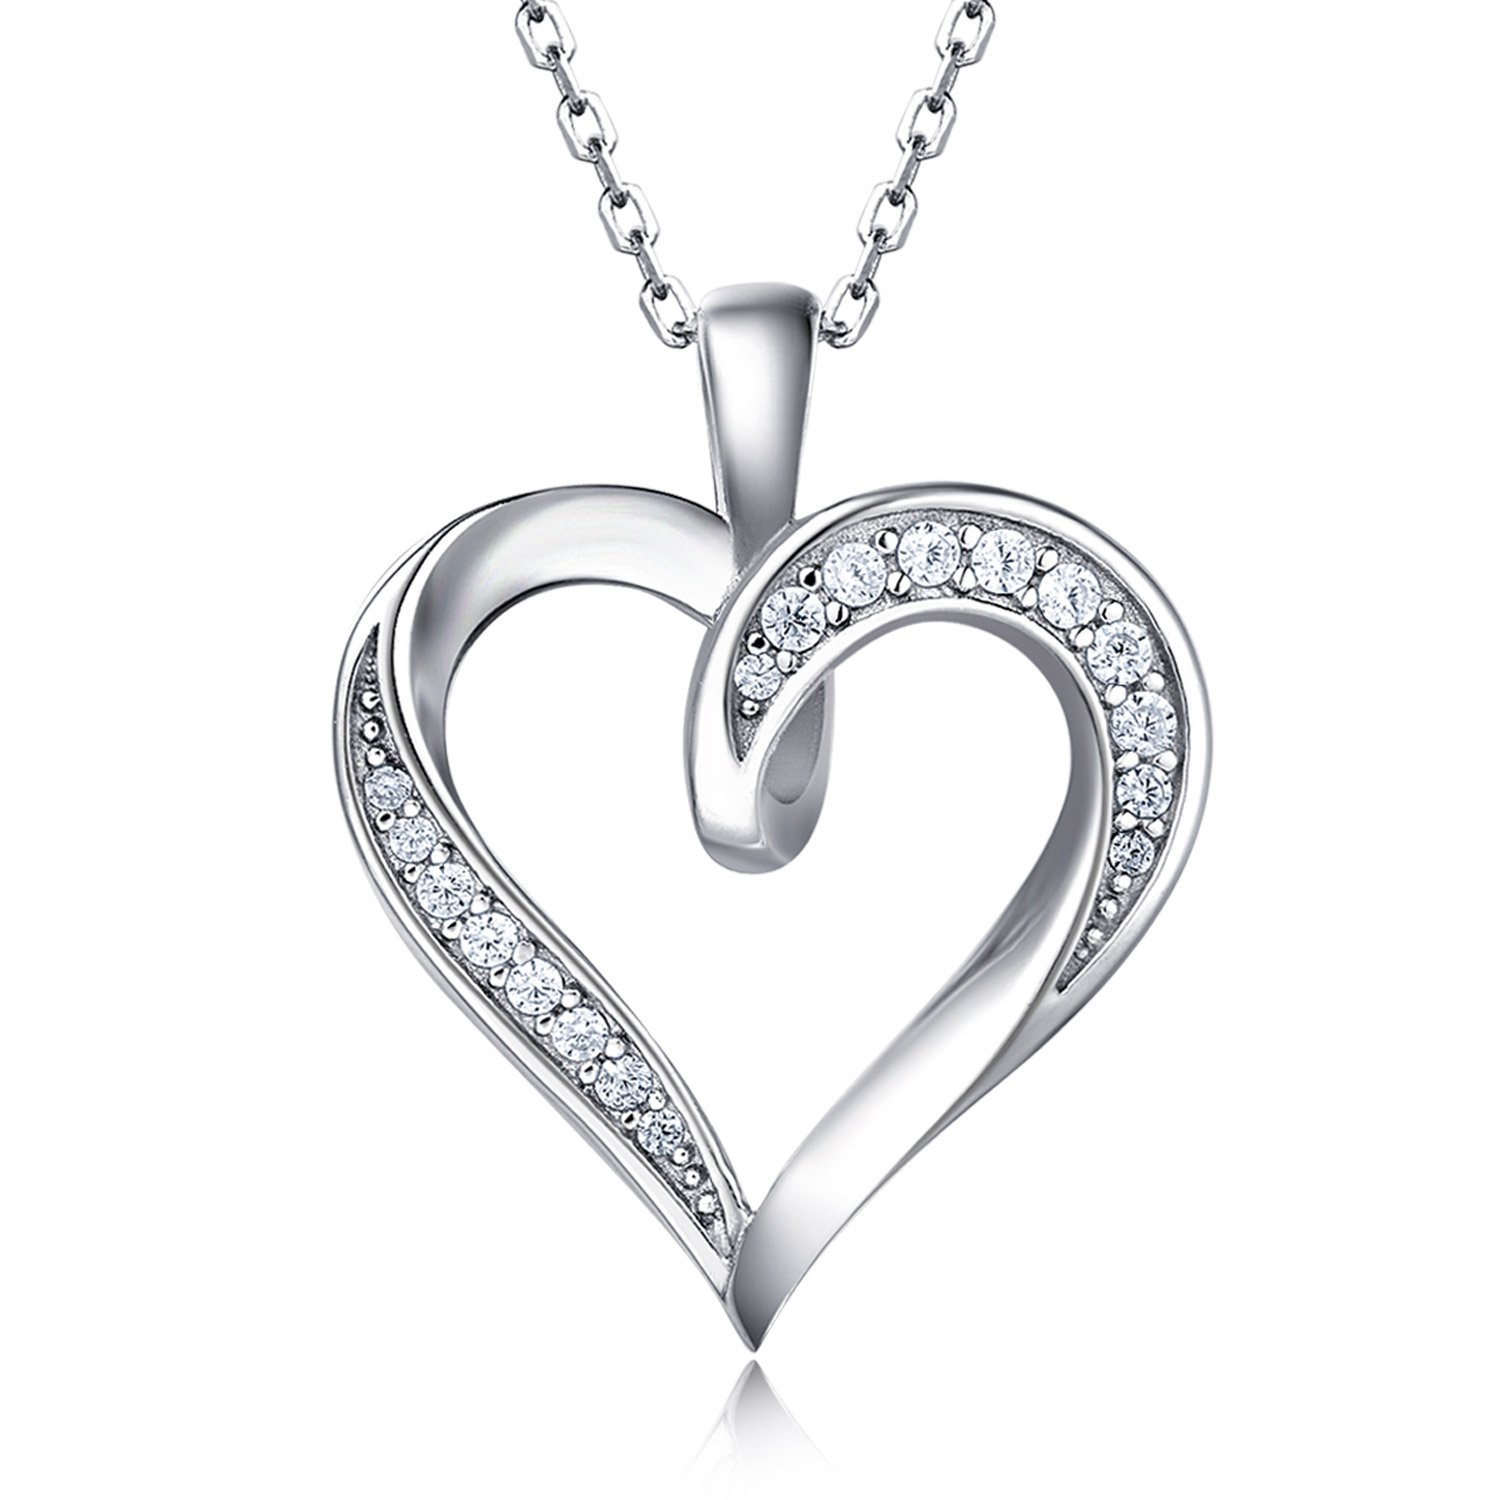 Billie Bijoux 925 Sterling Silver Infinity Love Heart Necklace Platinum Plated Round CZ Diamond Fine Woman's jewelry 18'' Mother's Day by Billie Bijoux